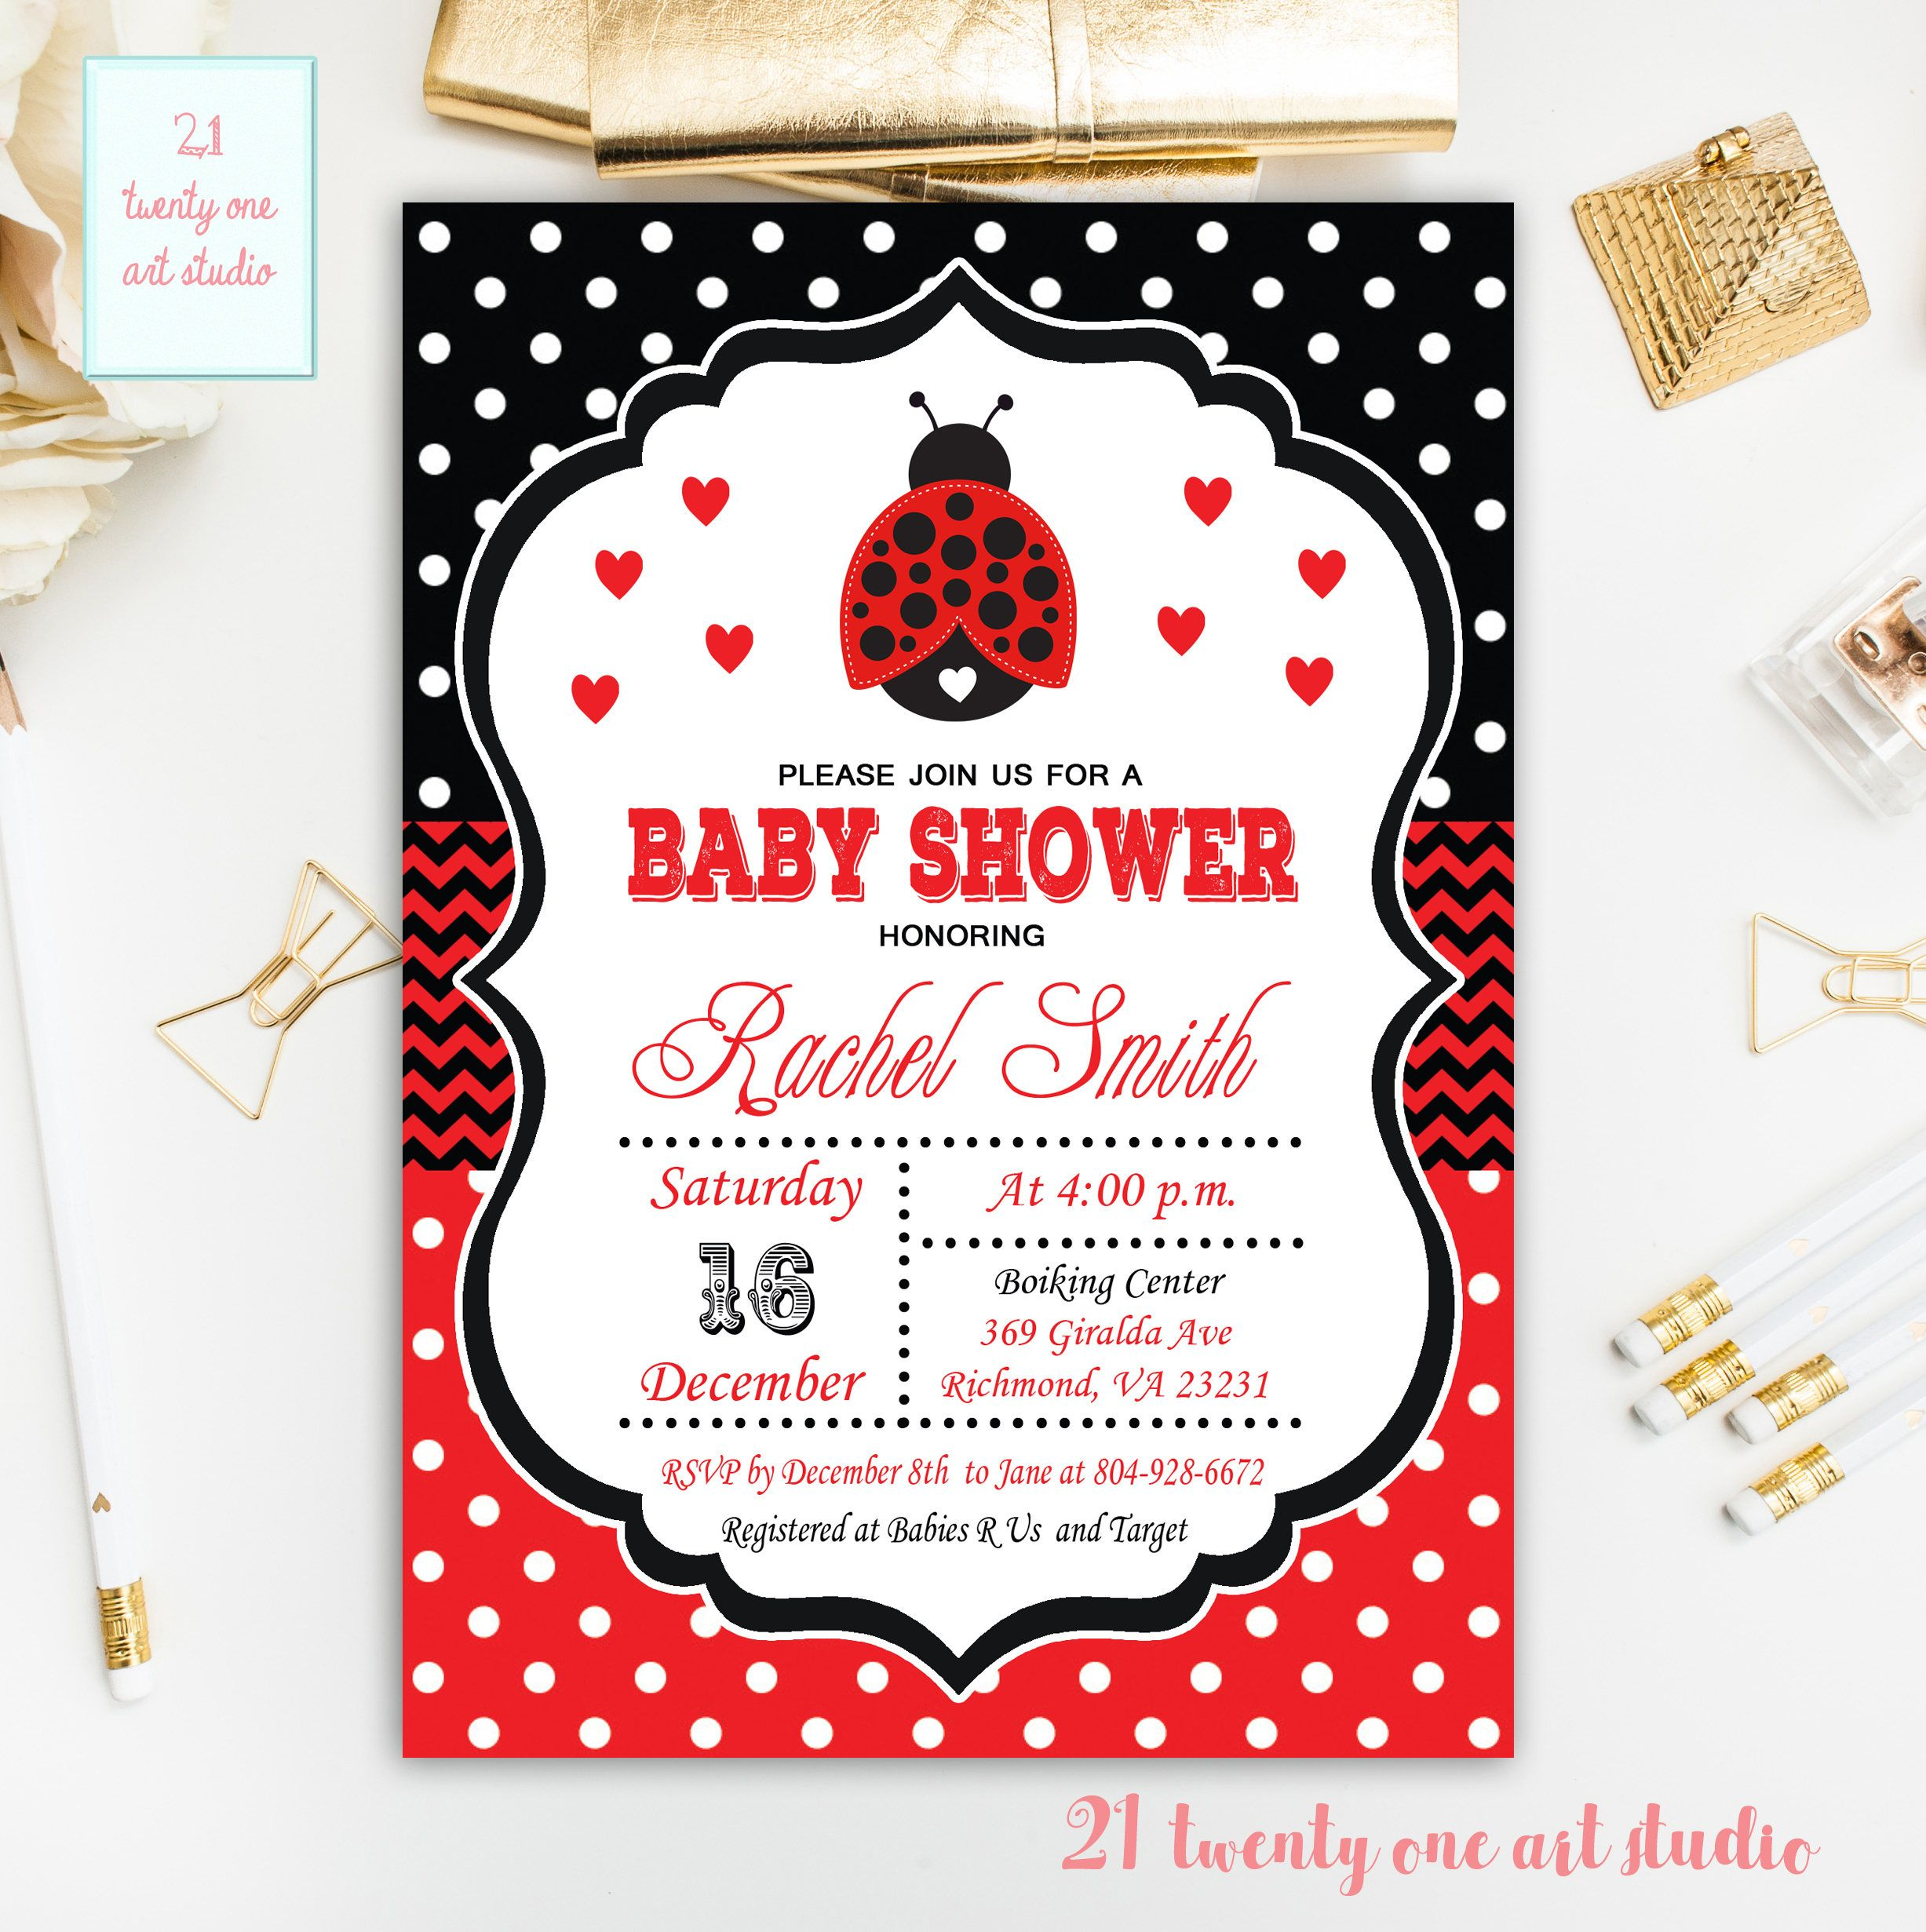 Famous Target Invitations Baby Shower Images - Invitations and ...